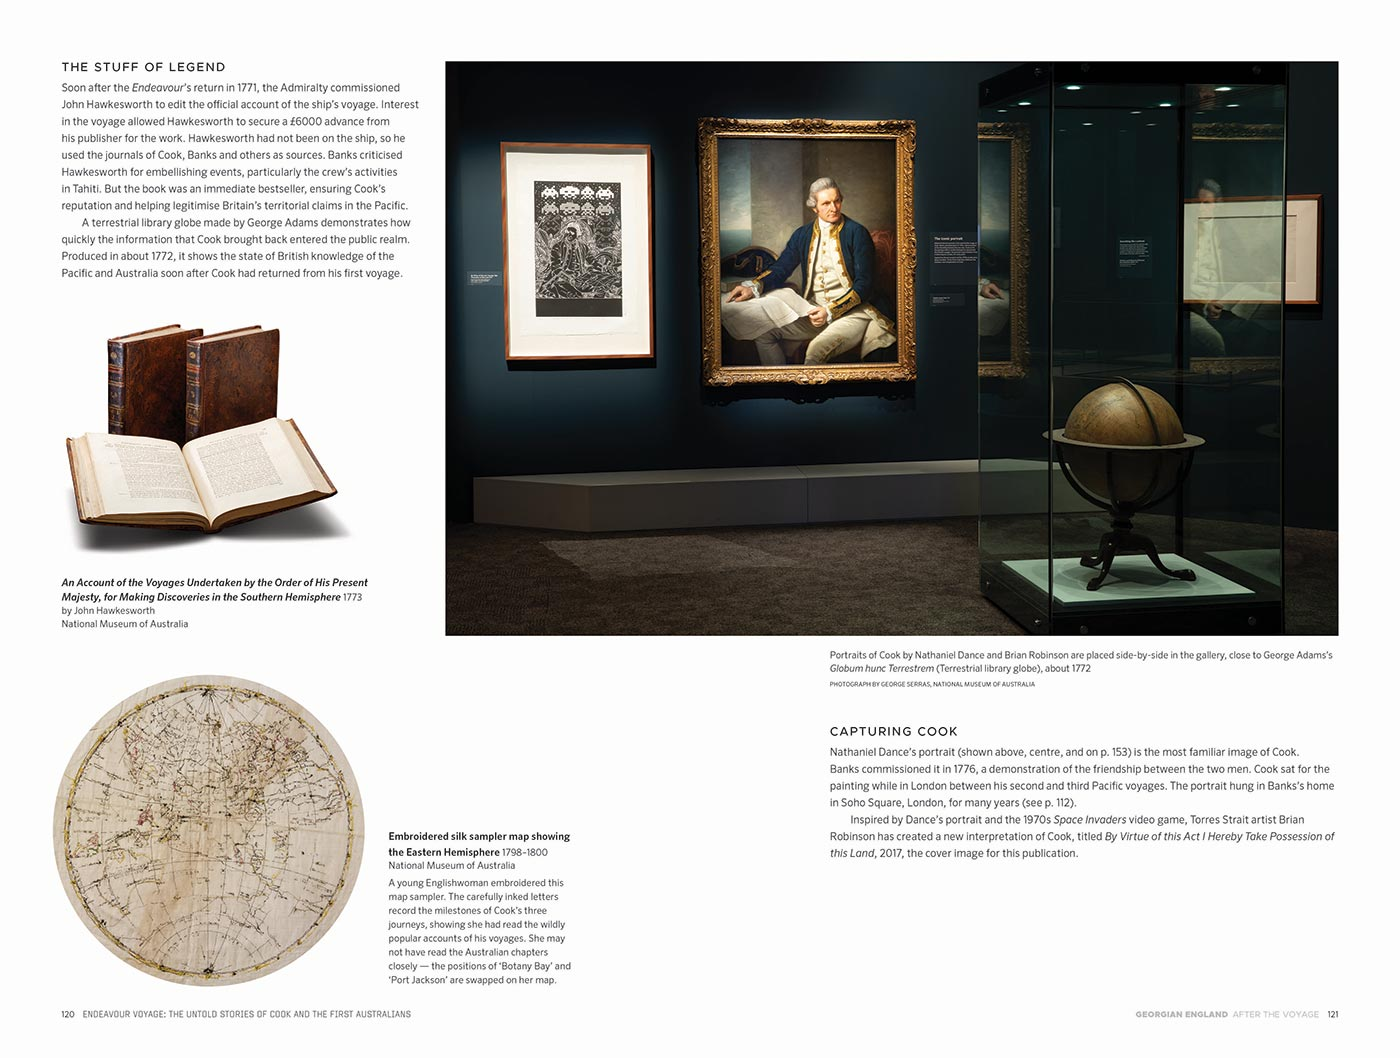 Sample page for the Endeavour Voyages: The Untold Stories of Cook and the First Australians catalogue. The page features body text; and images of an exhibition space with display box and art works, leatherbound books and embroidered silk map. - click to view larger image